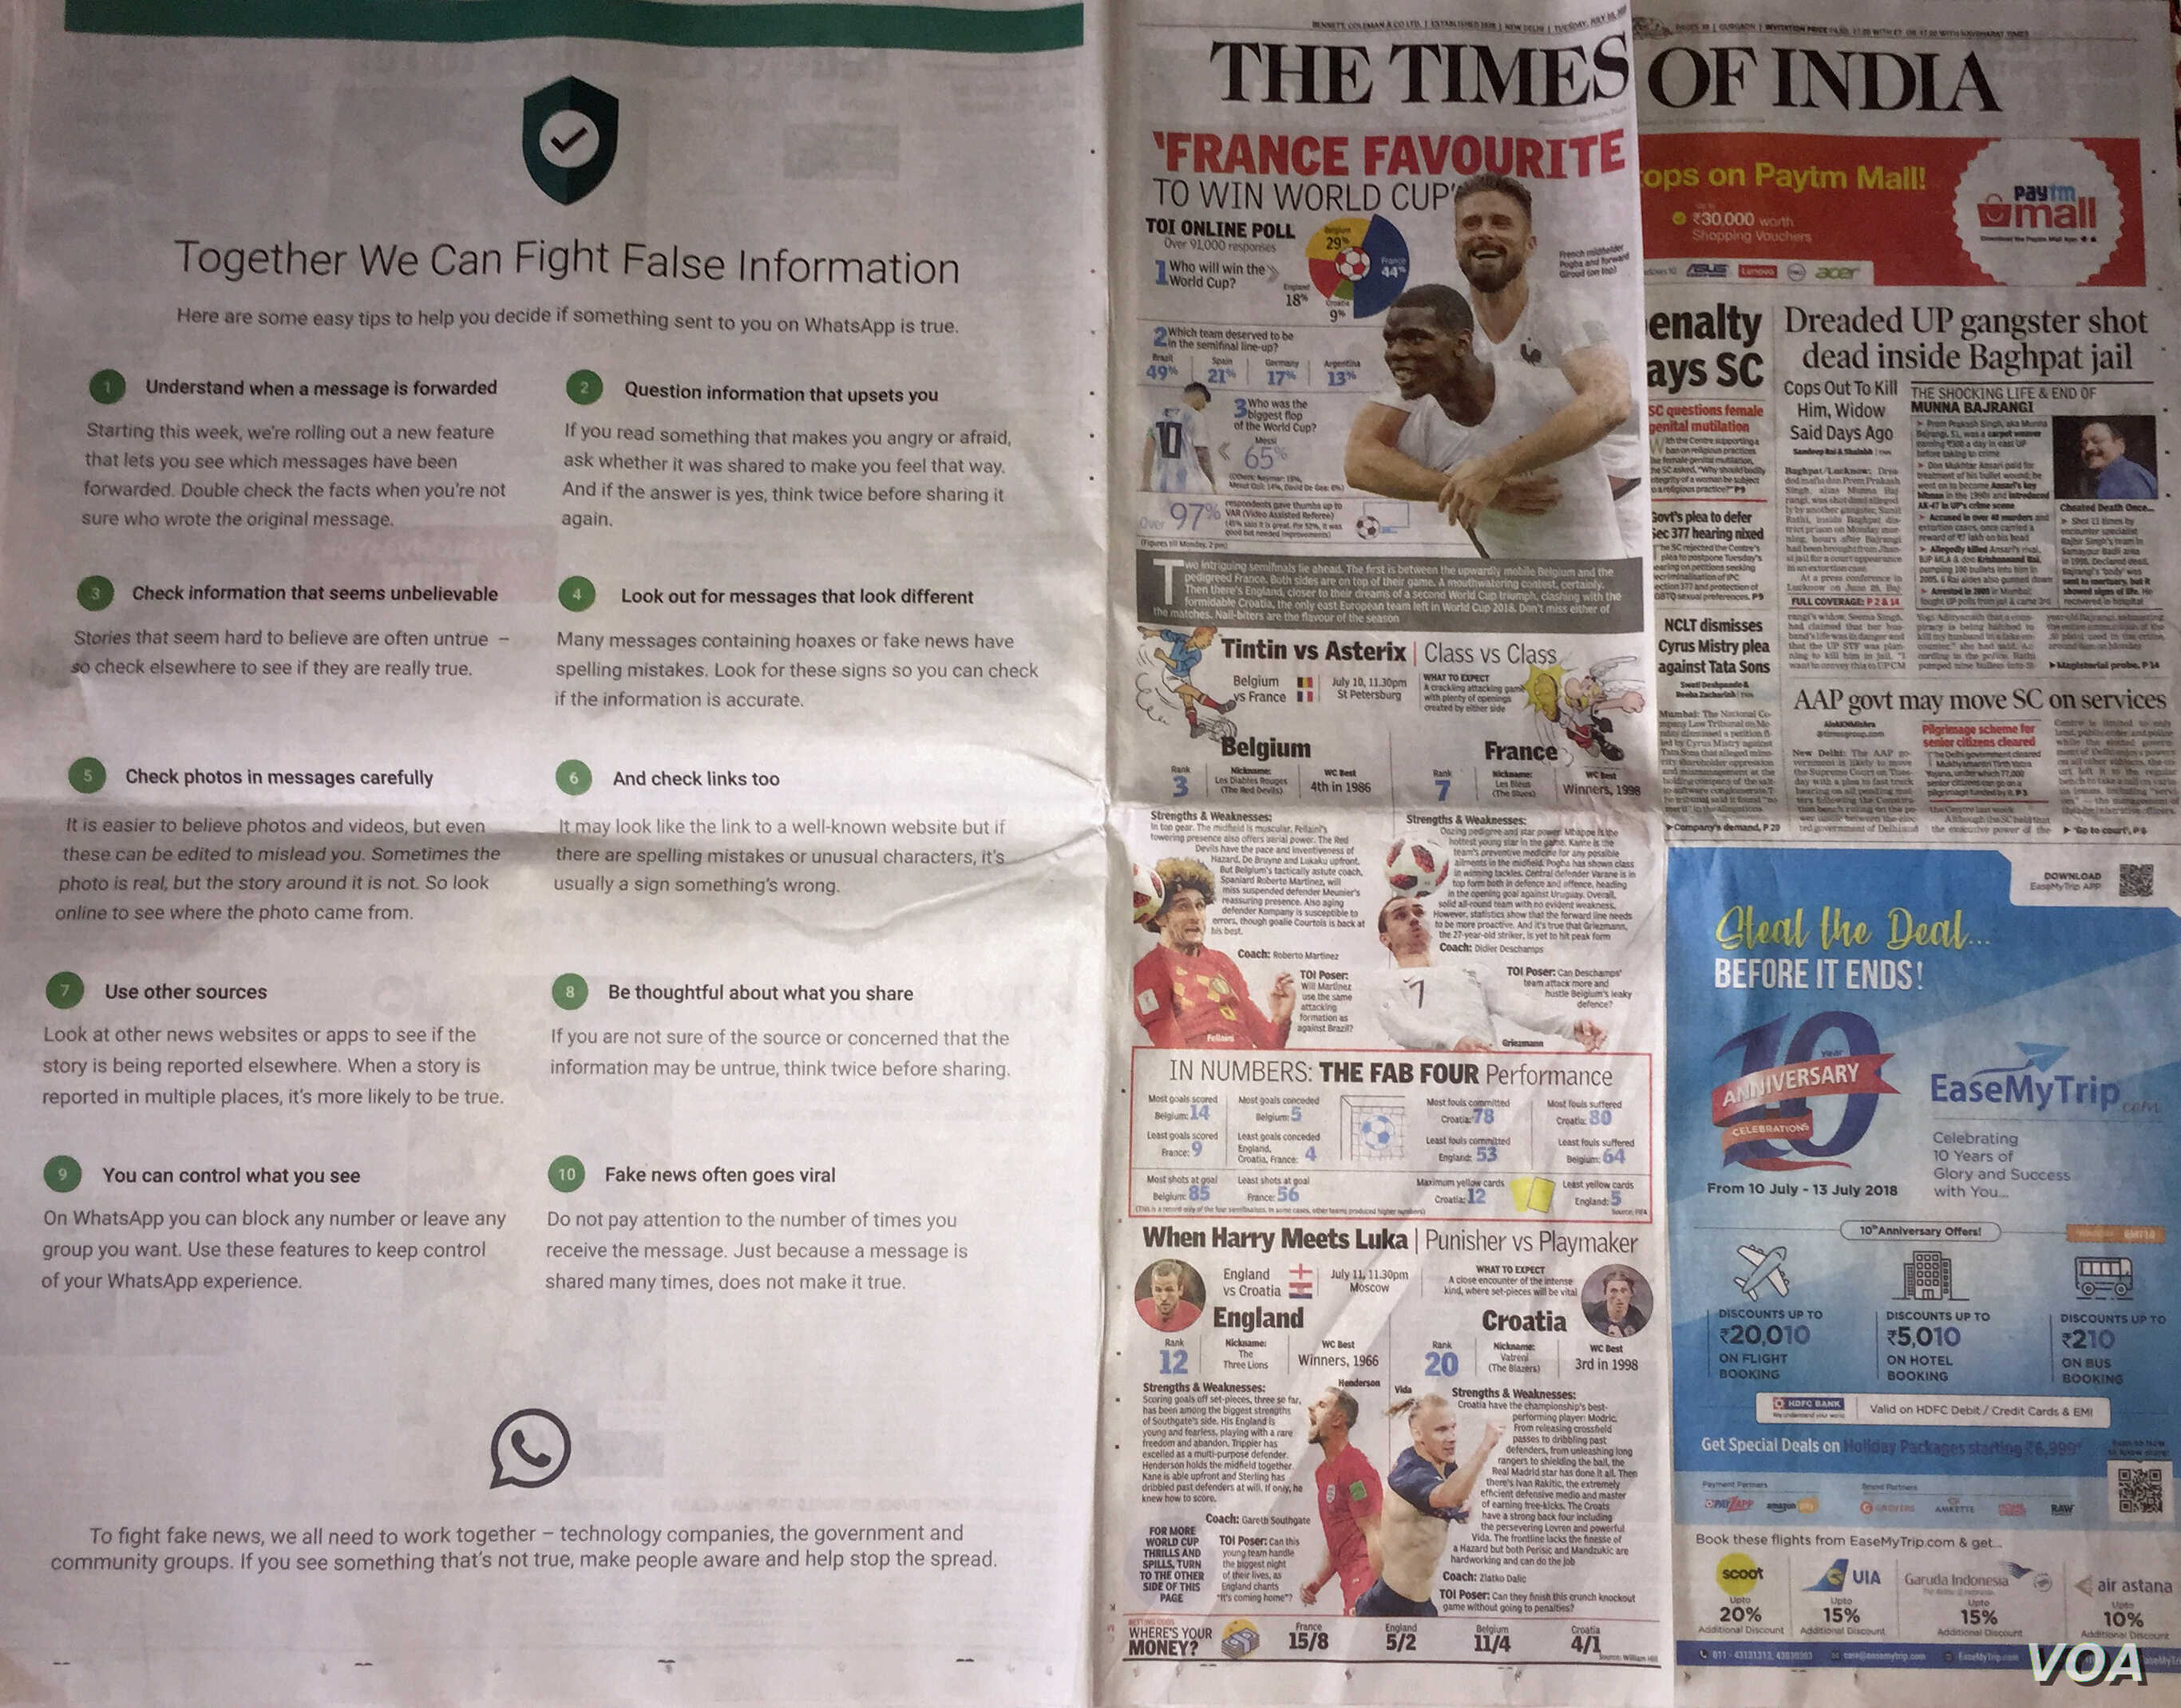 WhatsApp published full page advertisements in prominent newspapers giving 10 tips on how to fight false information.